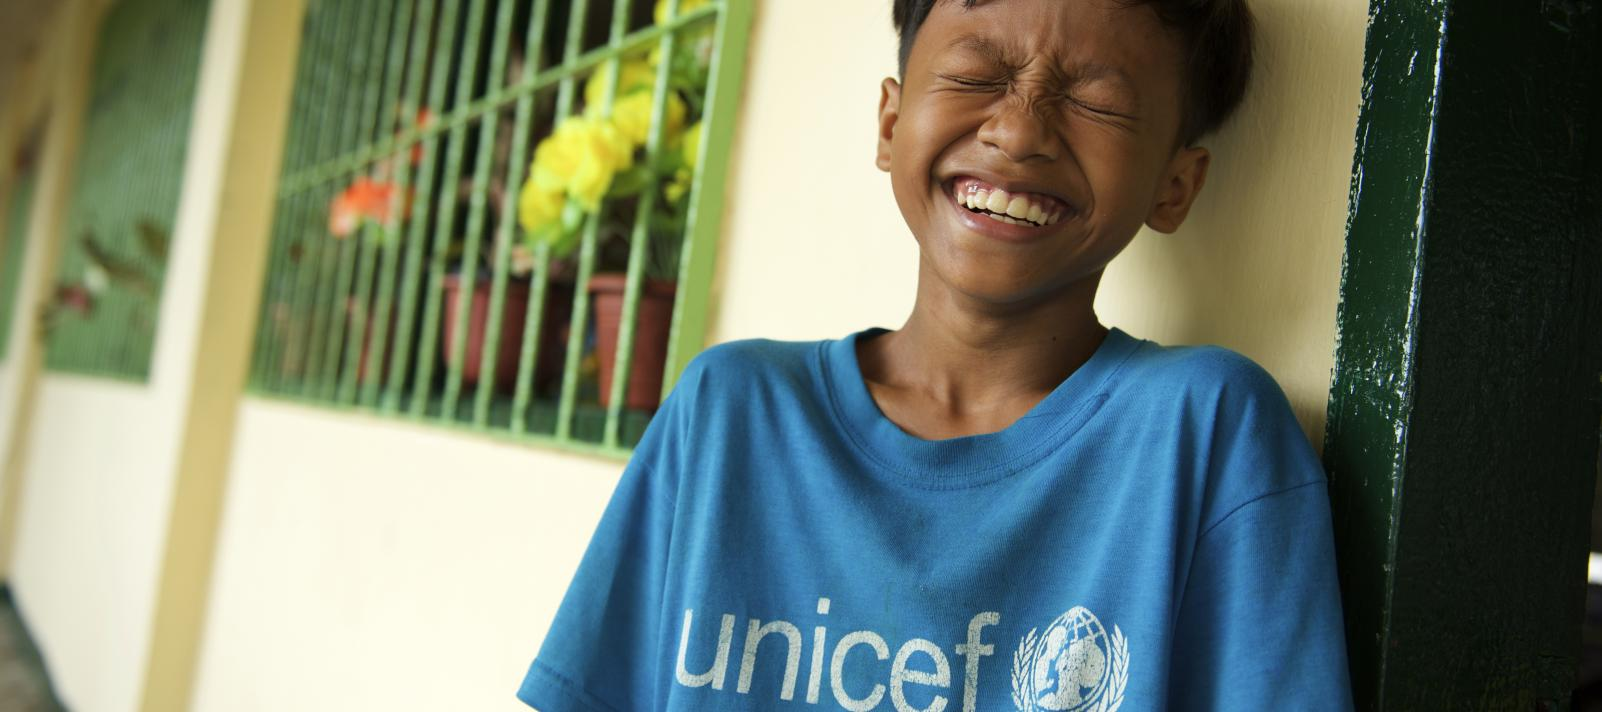 22631d2e6 A boy in a blue UNICEF shirt smiling towards the camera with his eyes closed